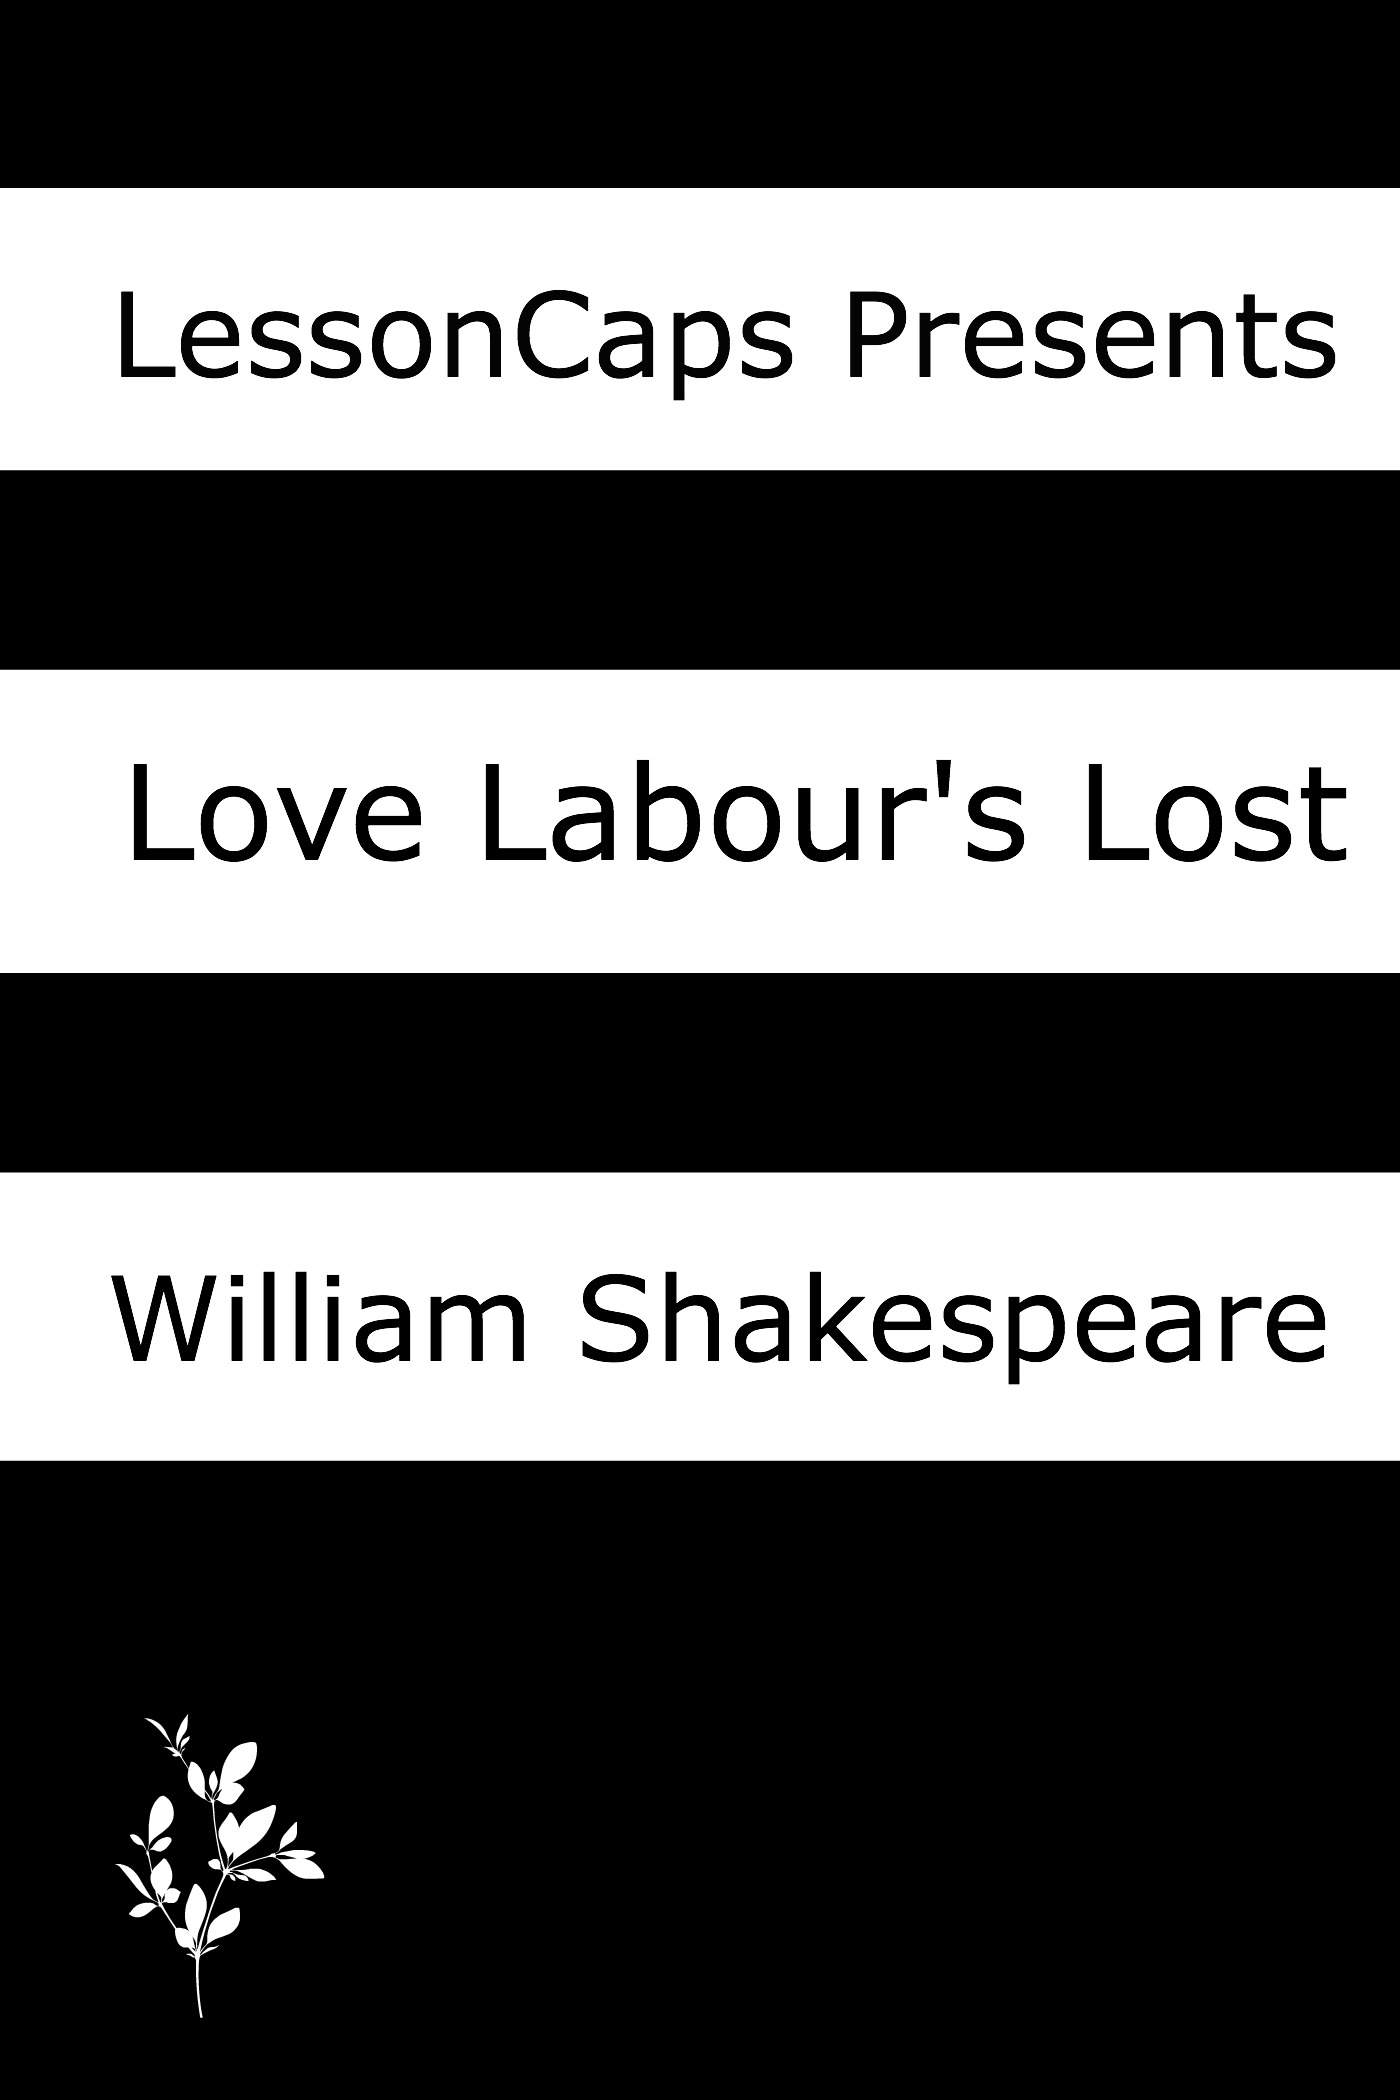 Love's Labour's Lost: Teacher Lesson Plans By: LessonCaps